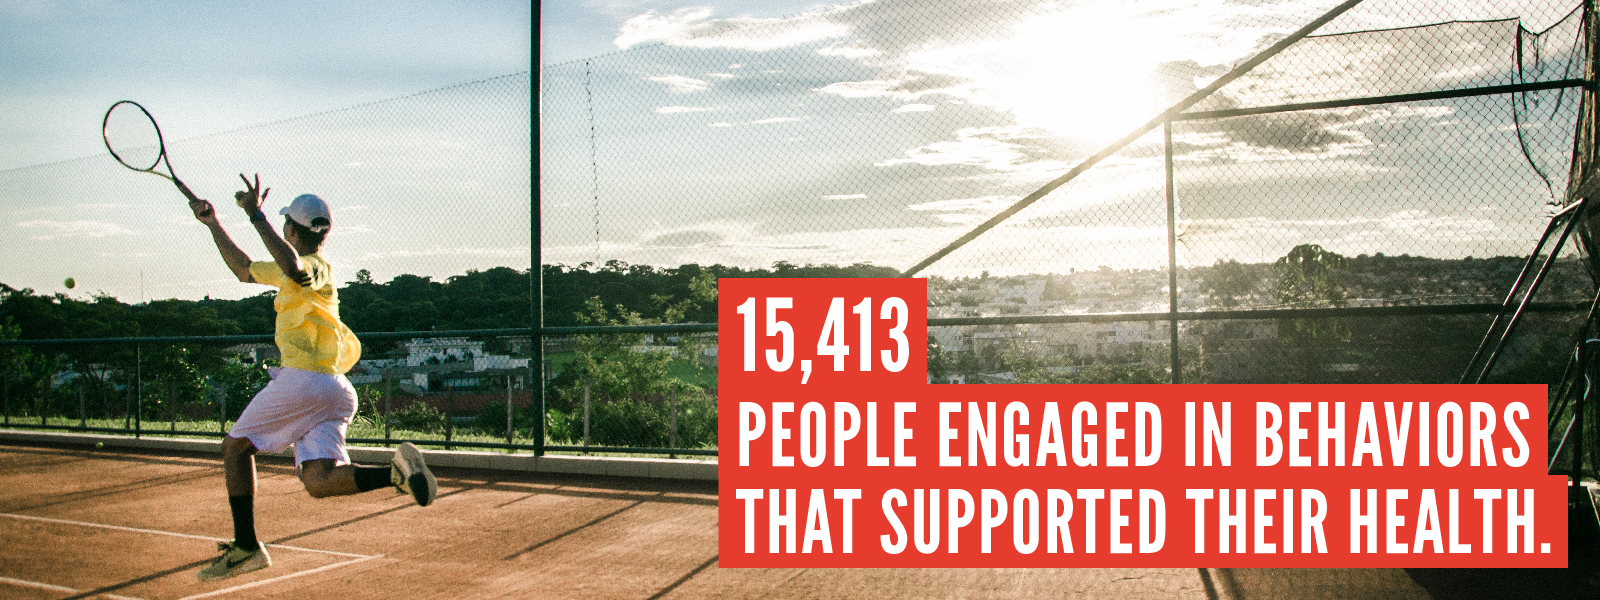 15,413 people engaged in behaviors that supported their health